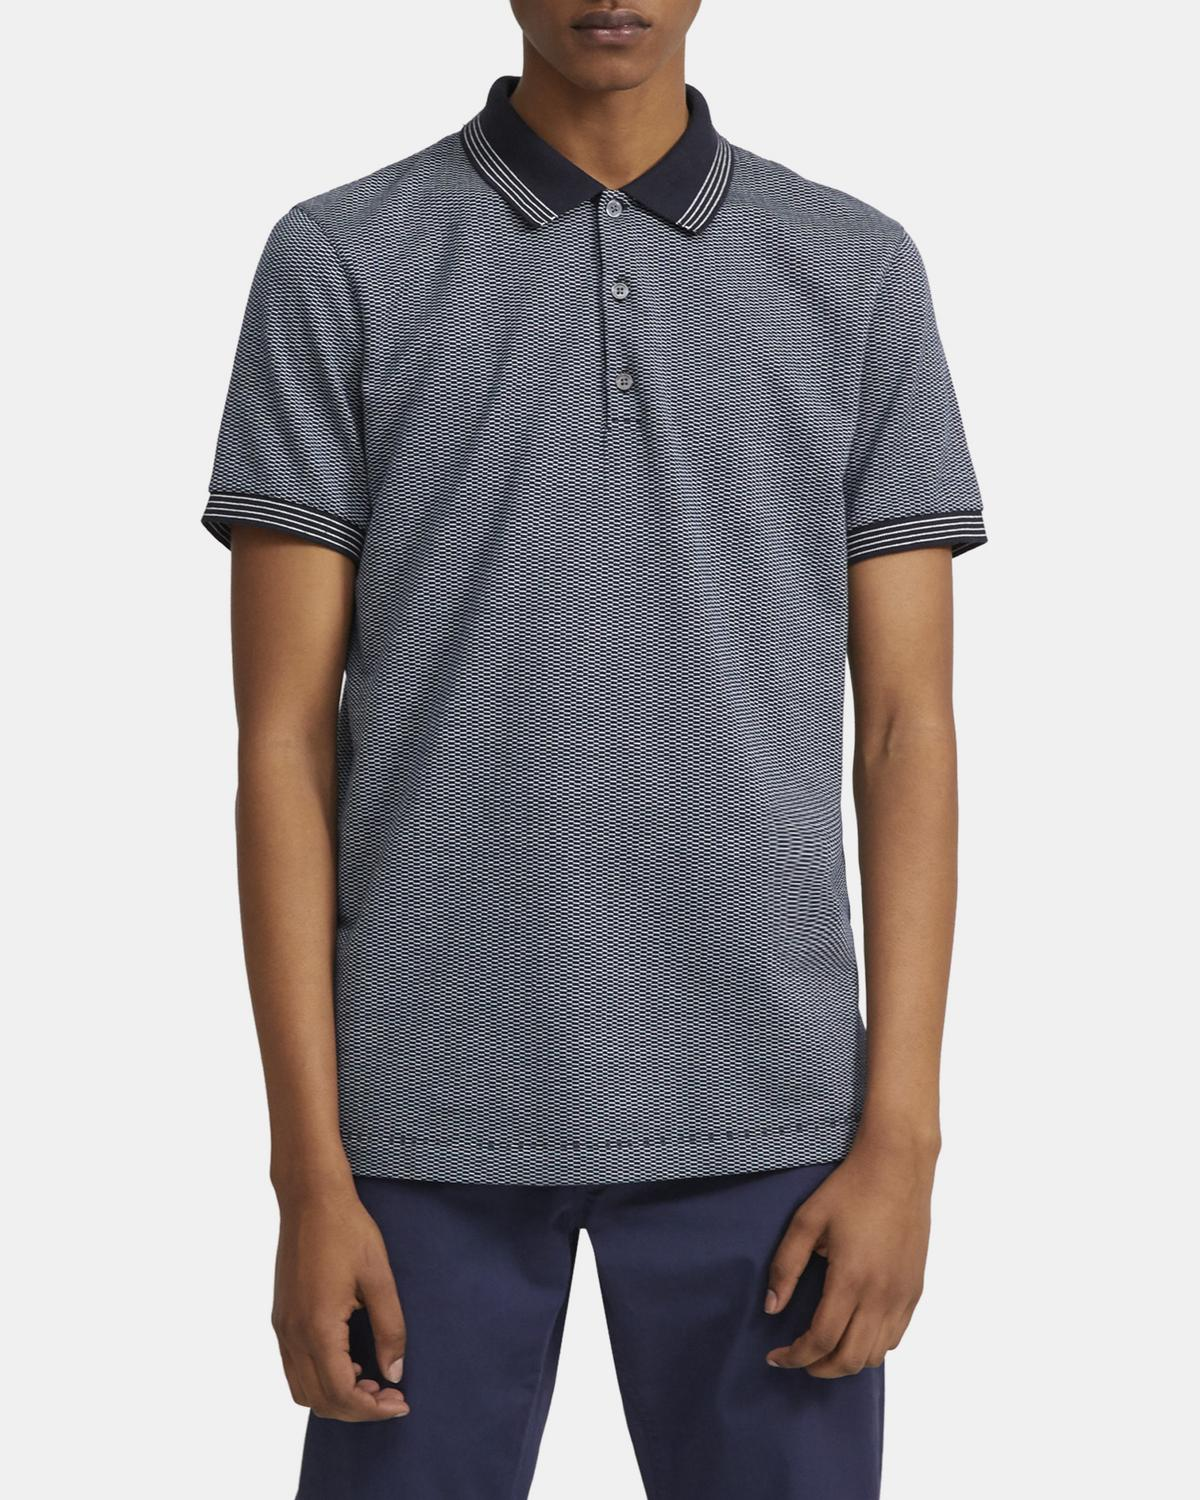 Polo Shirt in Geometric Knit